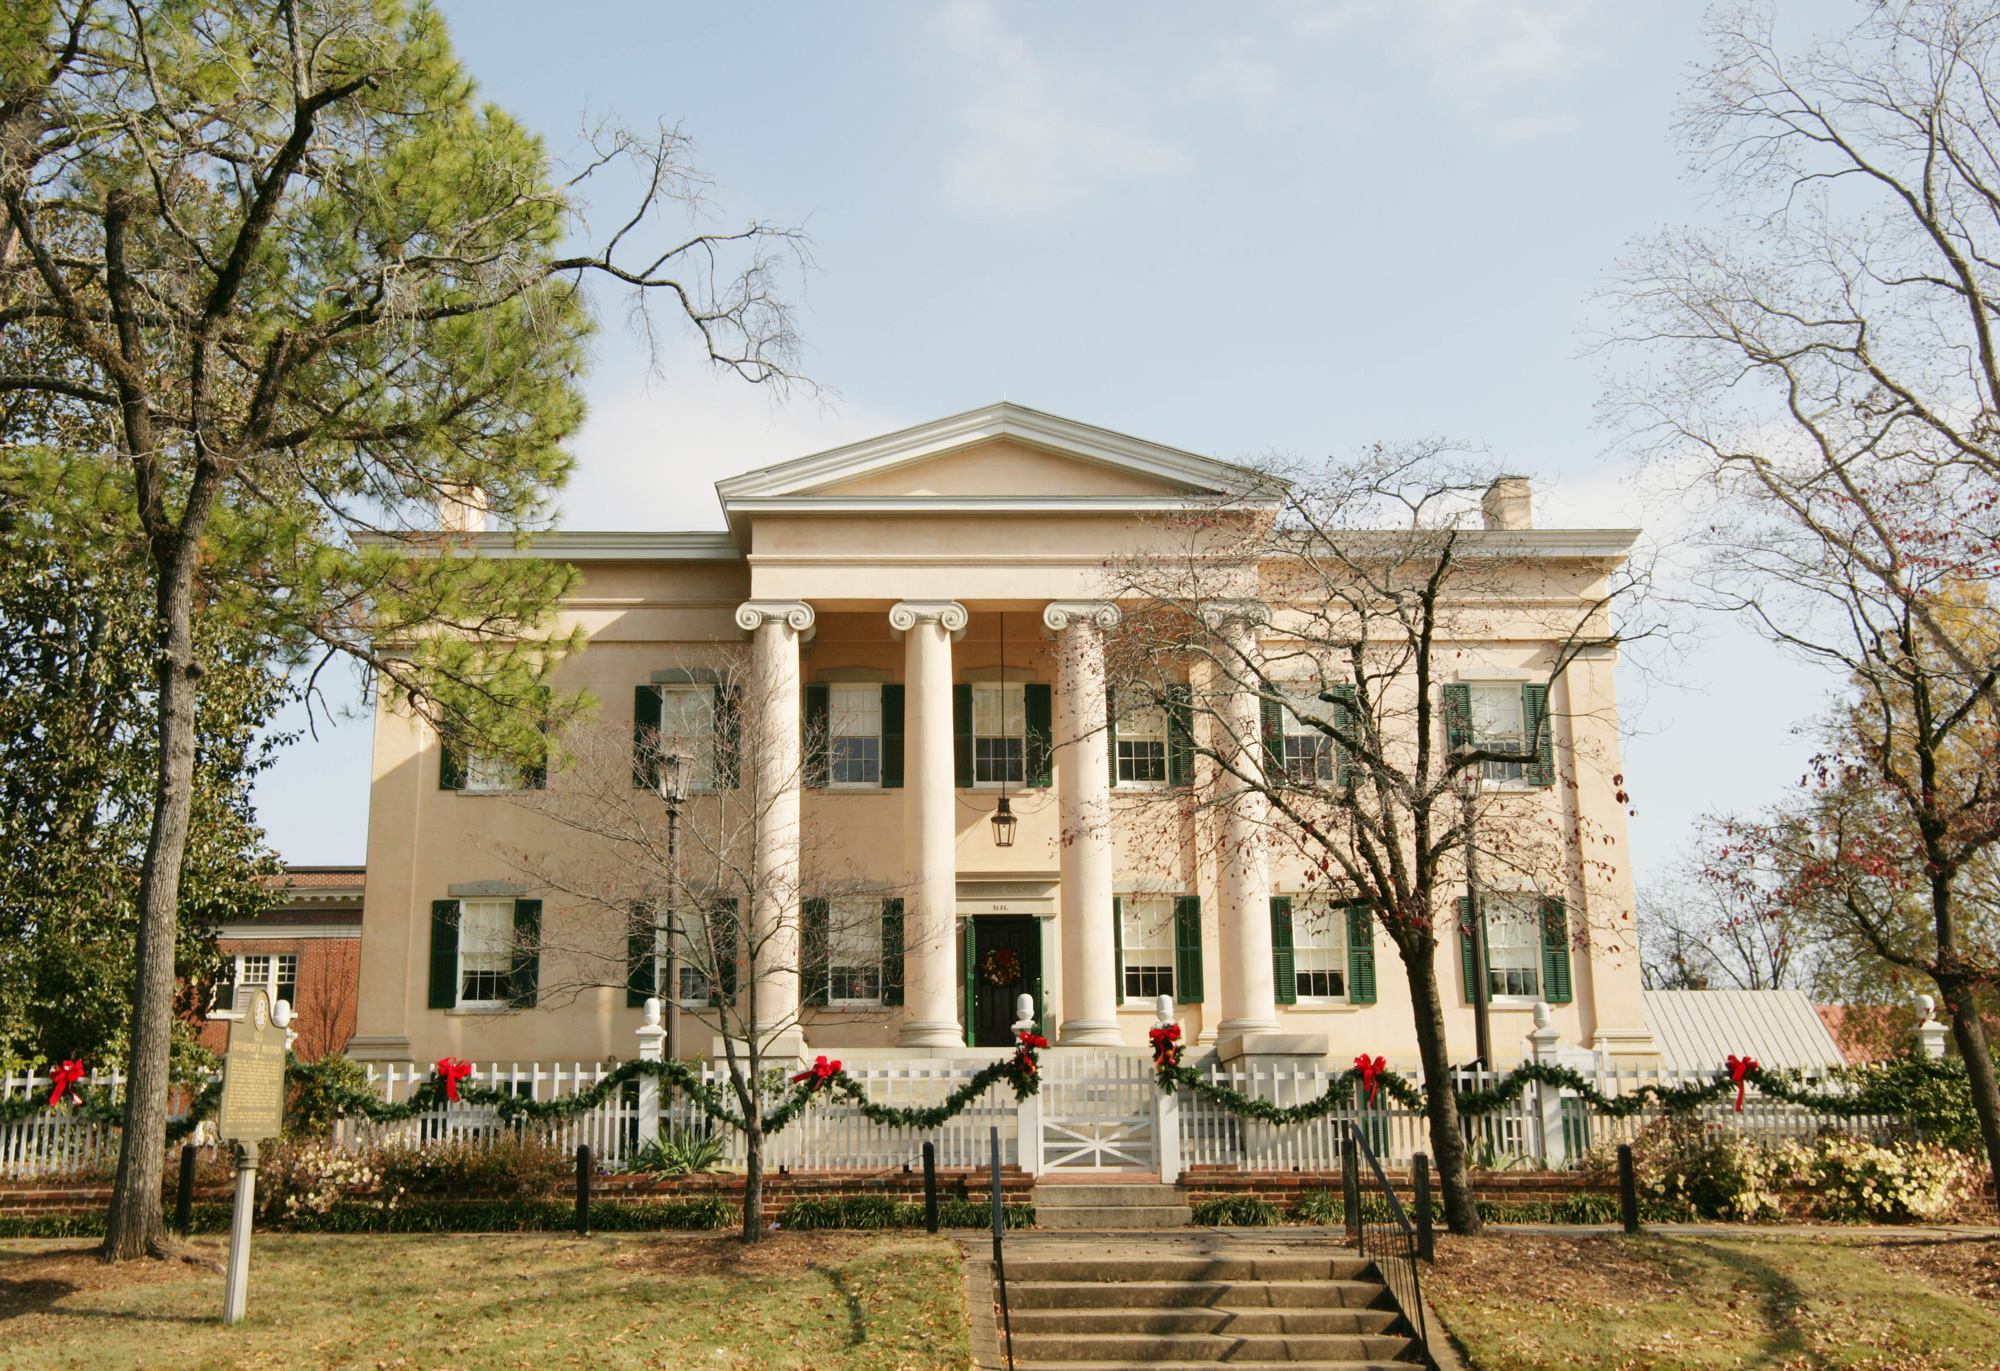 Georgia's Old Governor's Mansion decorated for the holidays